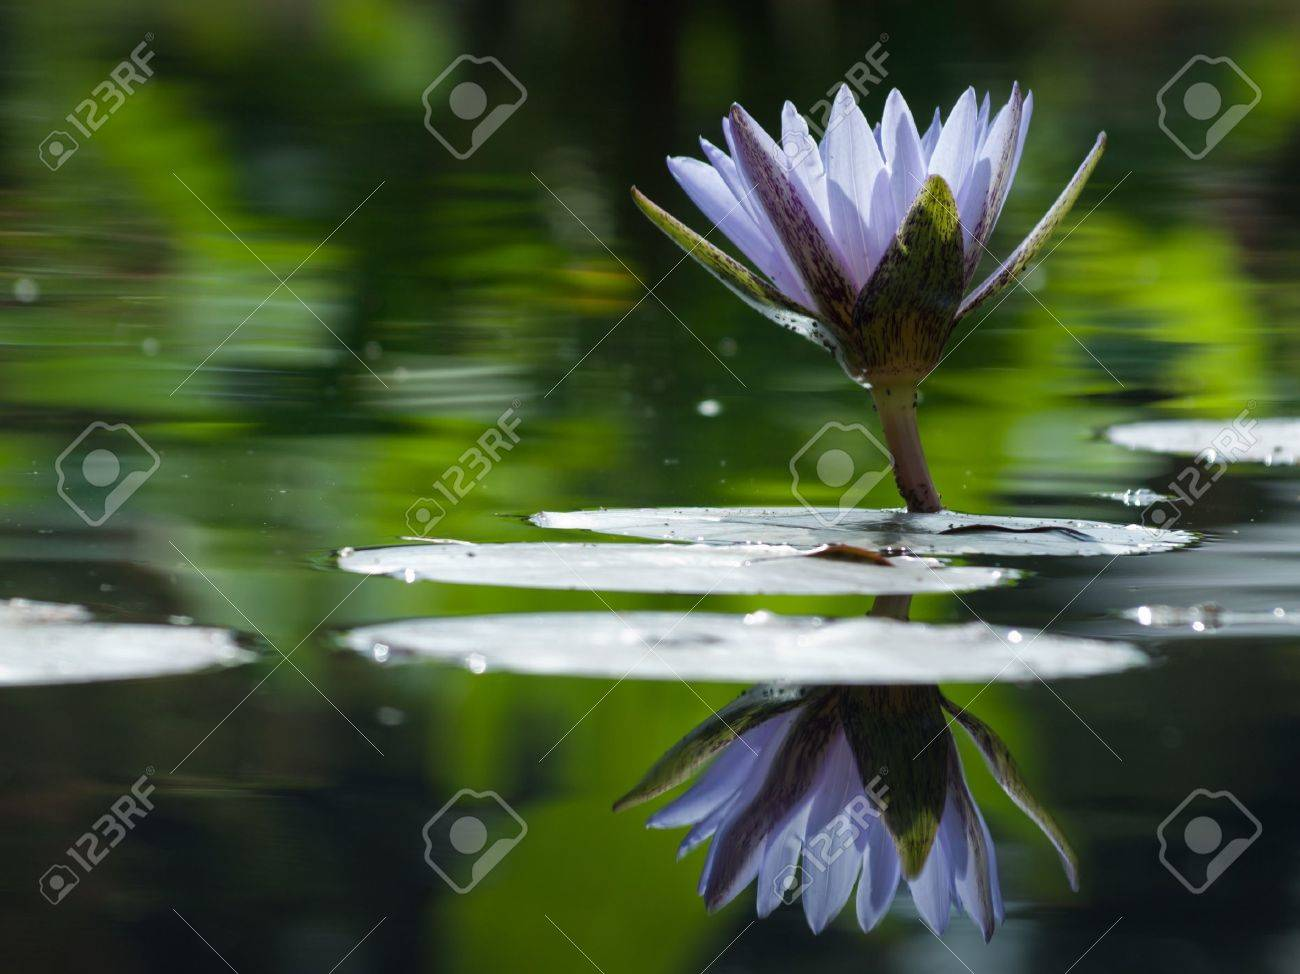 Water lily blossoming in the pond. N. 'Bill Frase' water lily. Stock Photo - 10497390